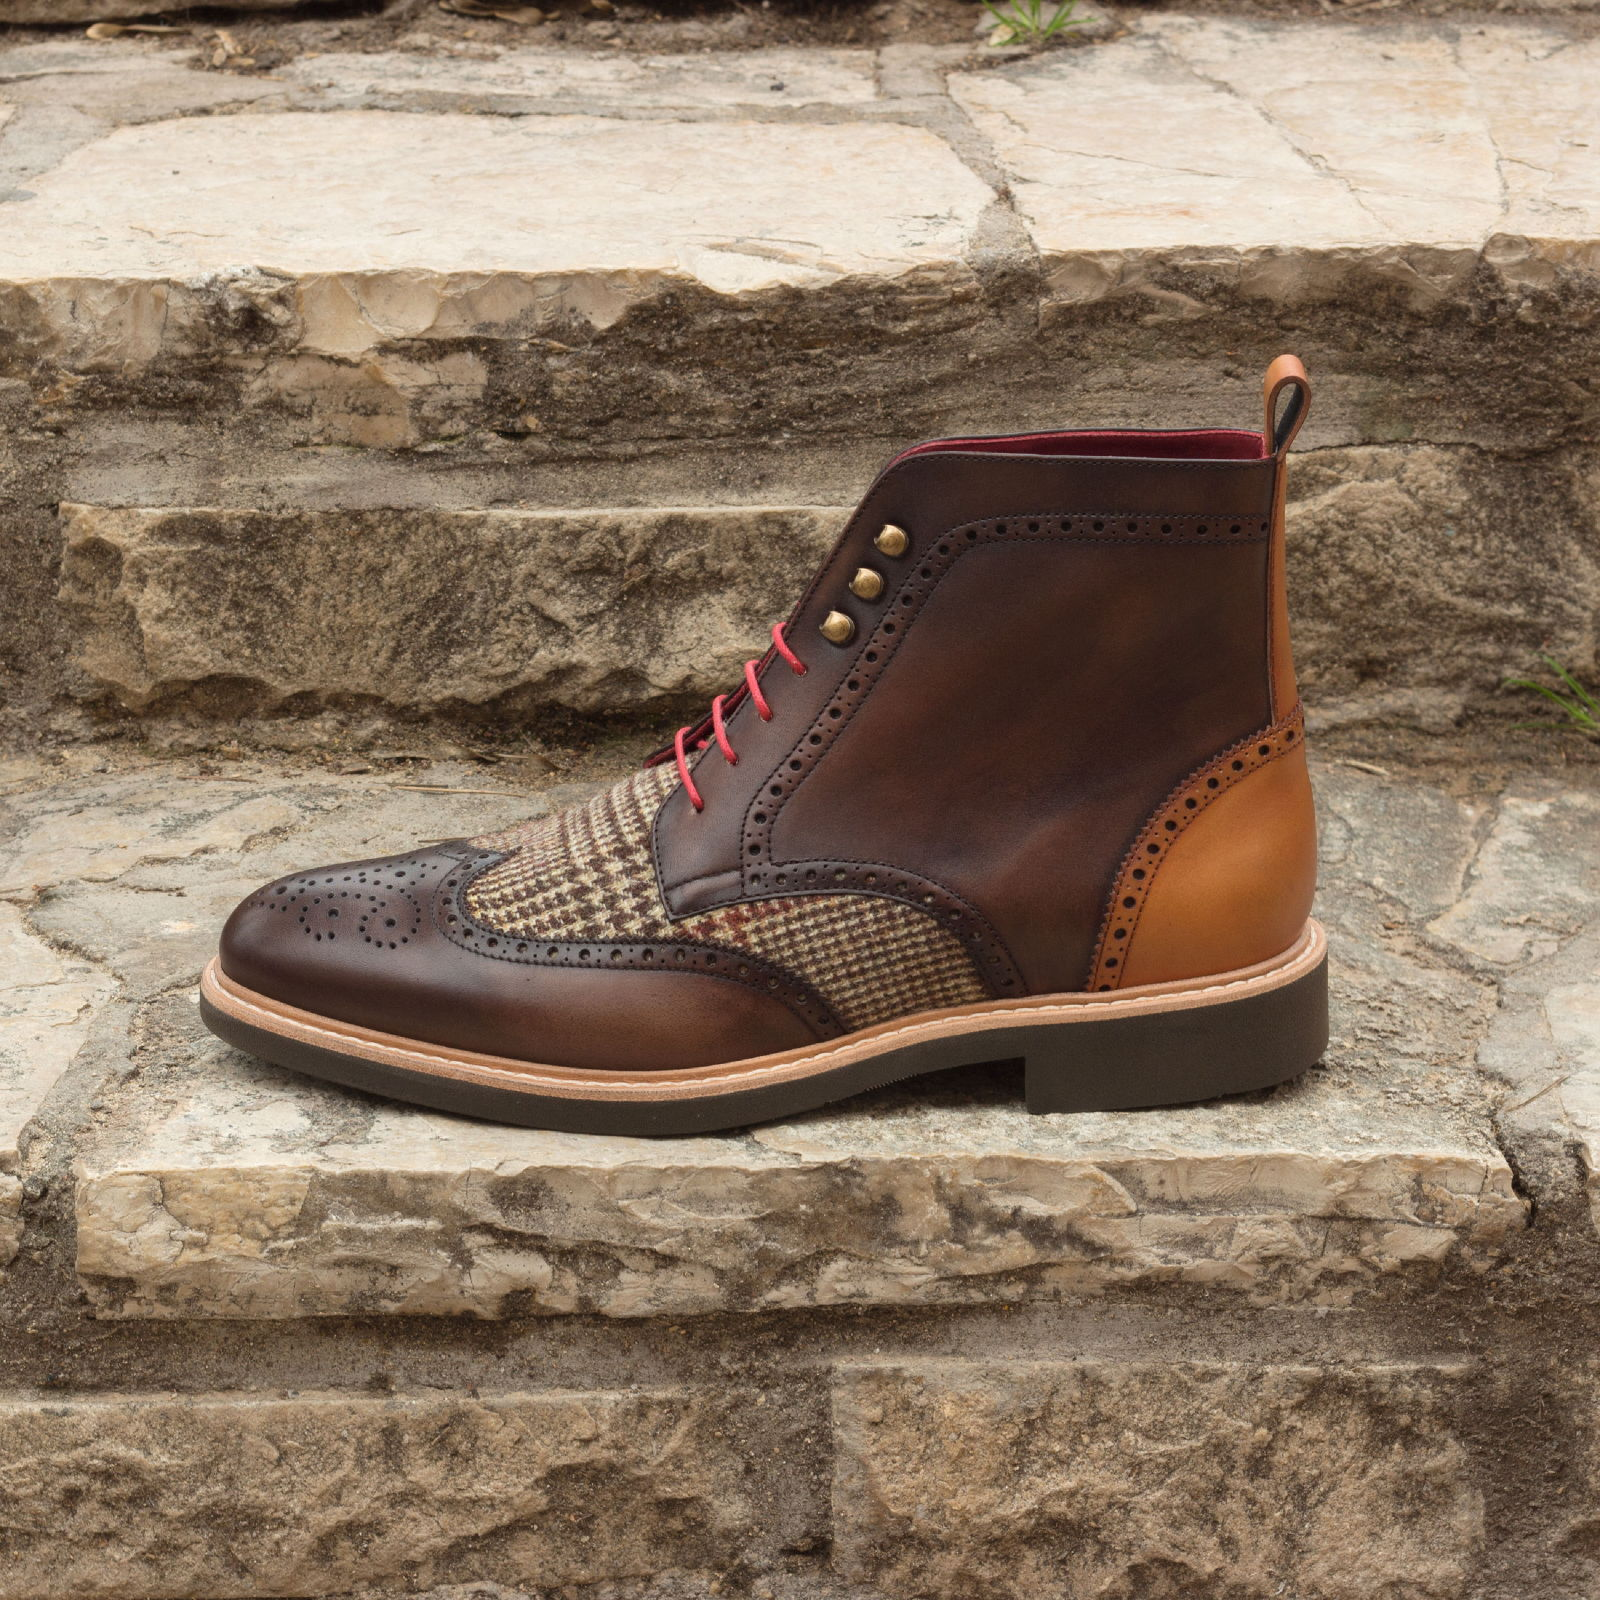 Military brogue tweed sartorial + med brown painted calf + dark brown painted calf : 250€